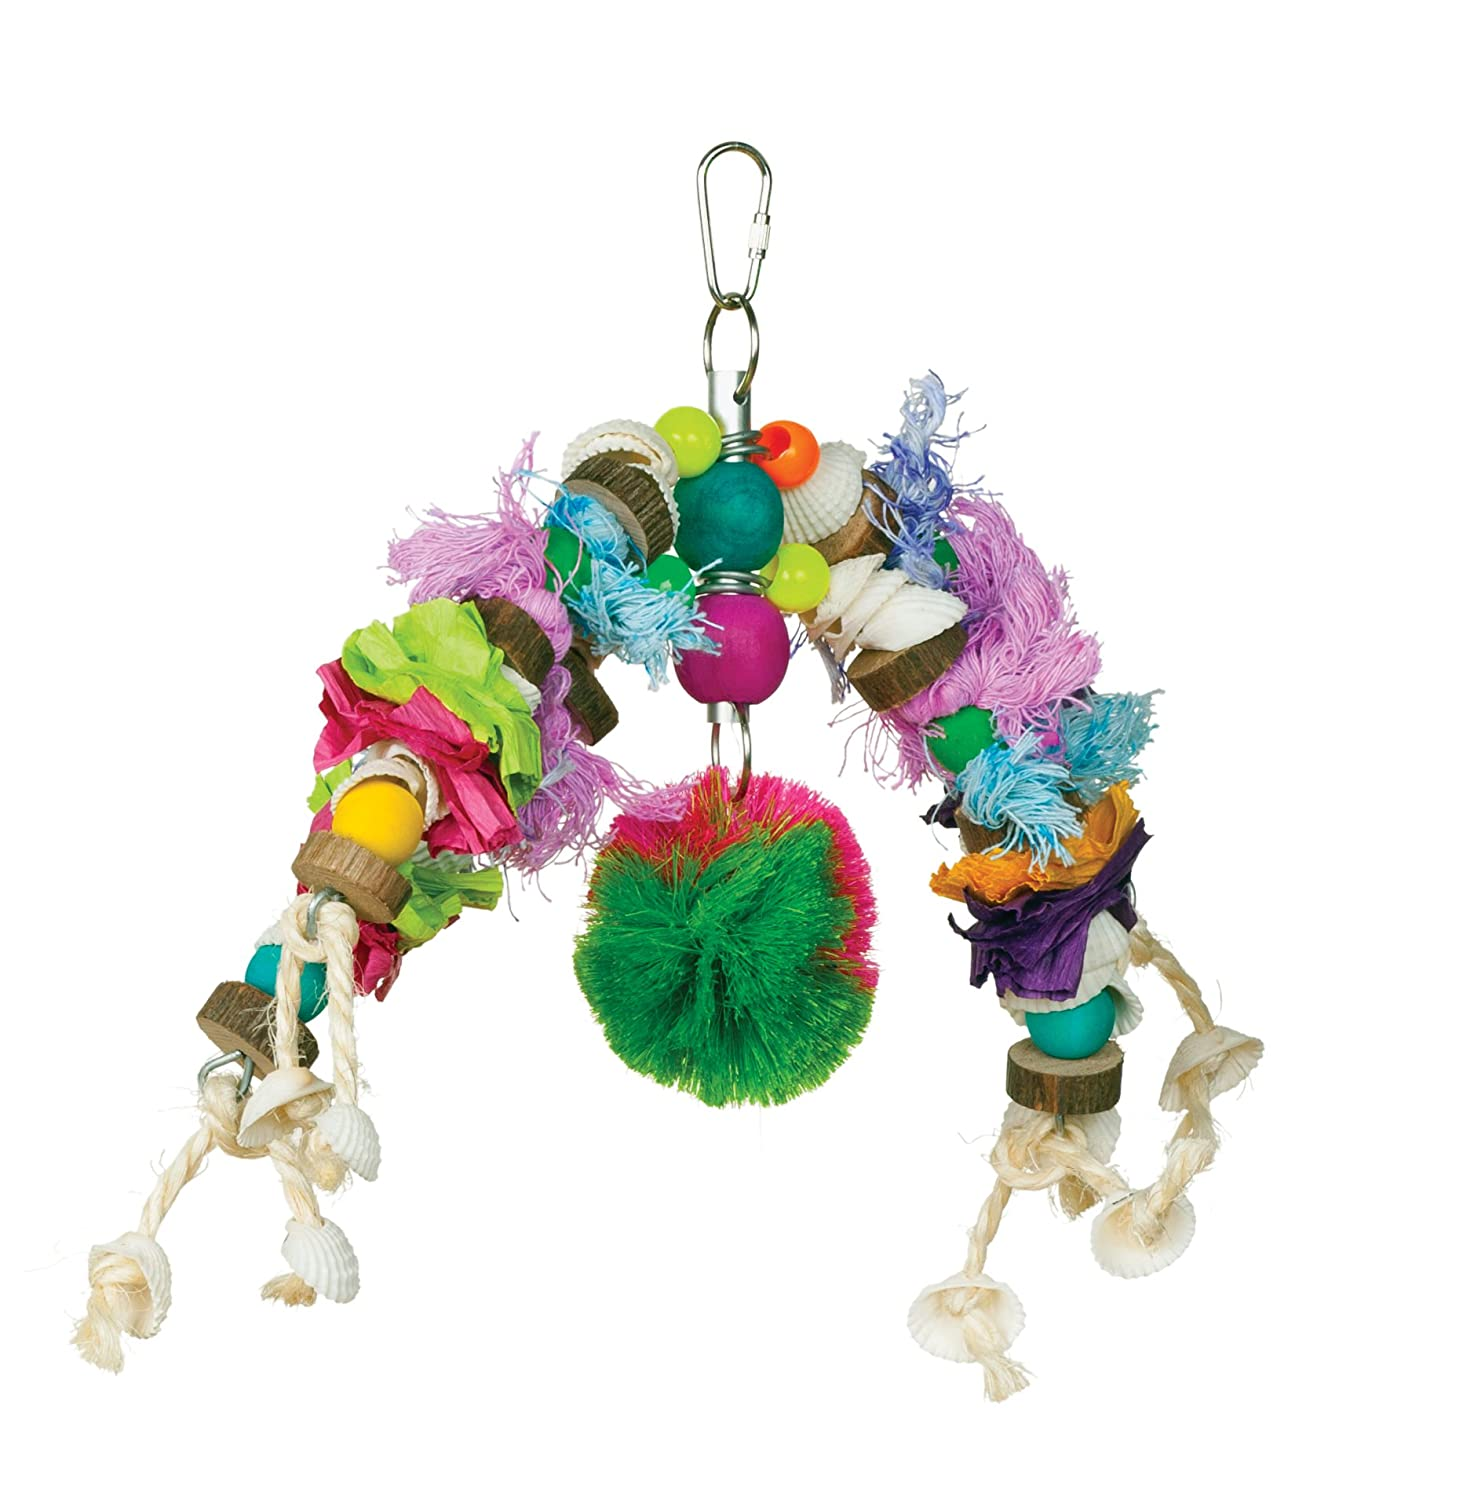 Prevue Hendryx 62162 Tropical Teasers Mobile Bird Toy